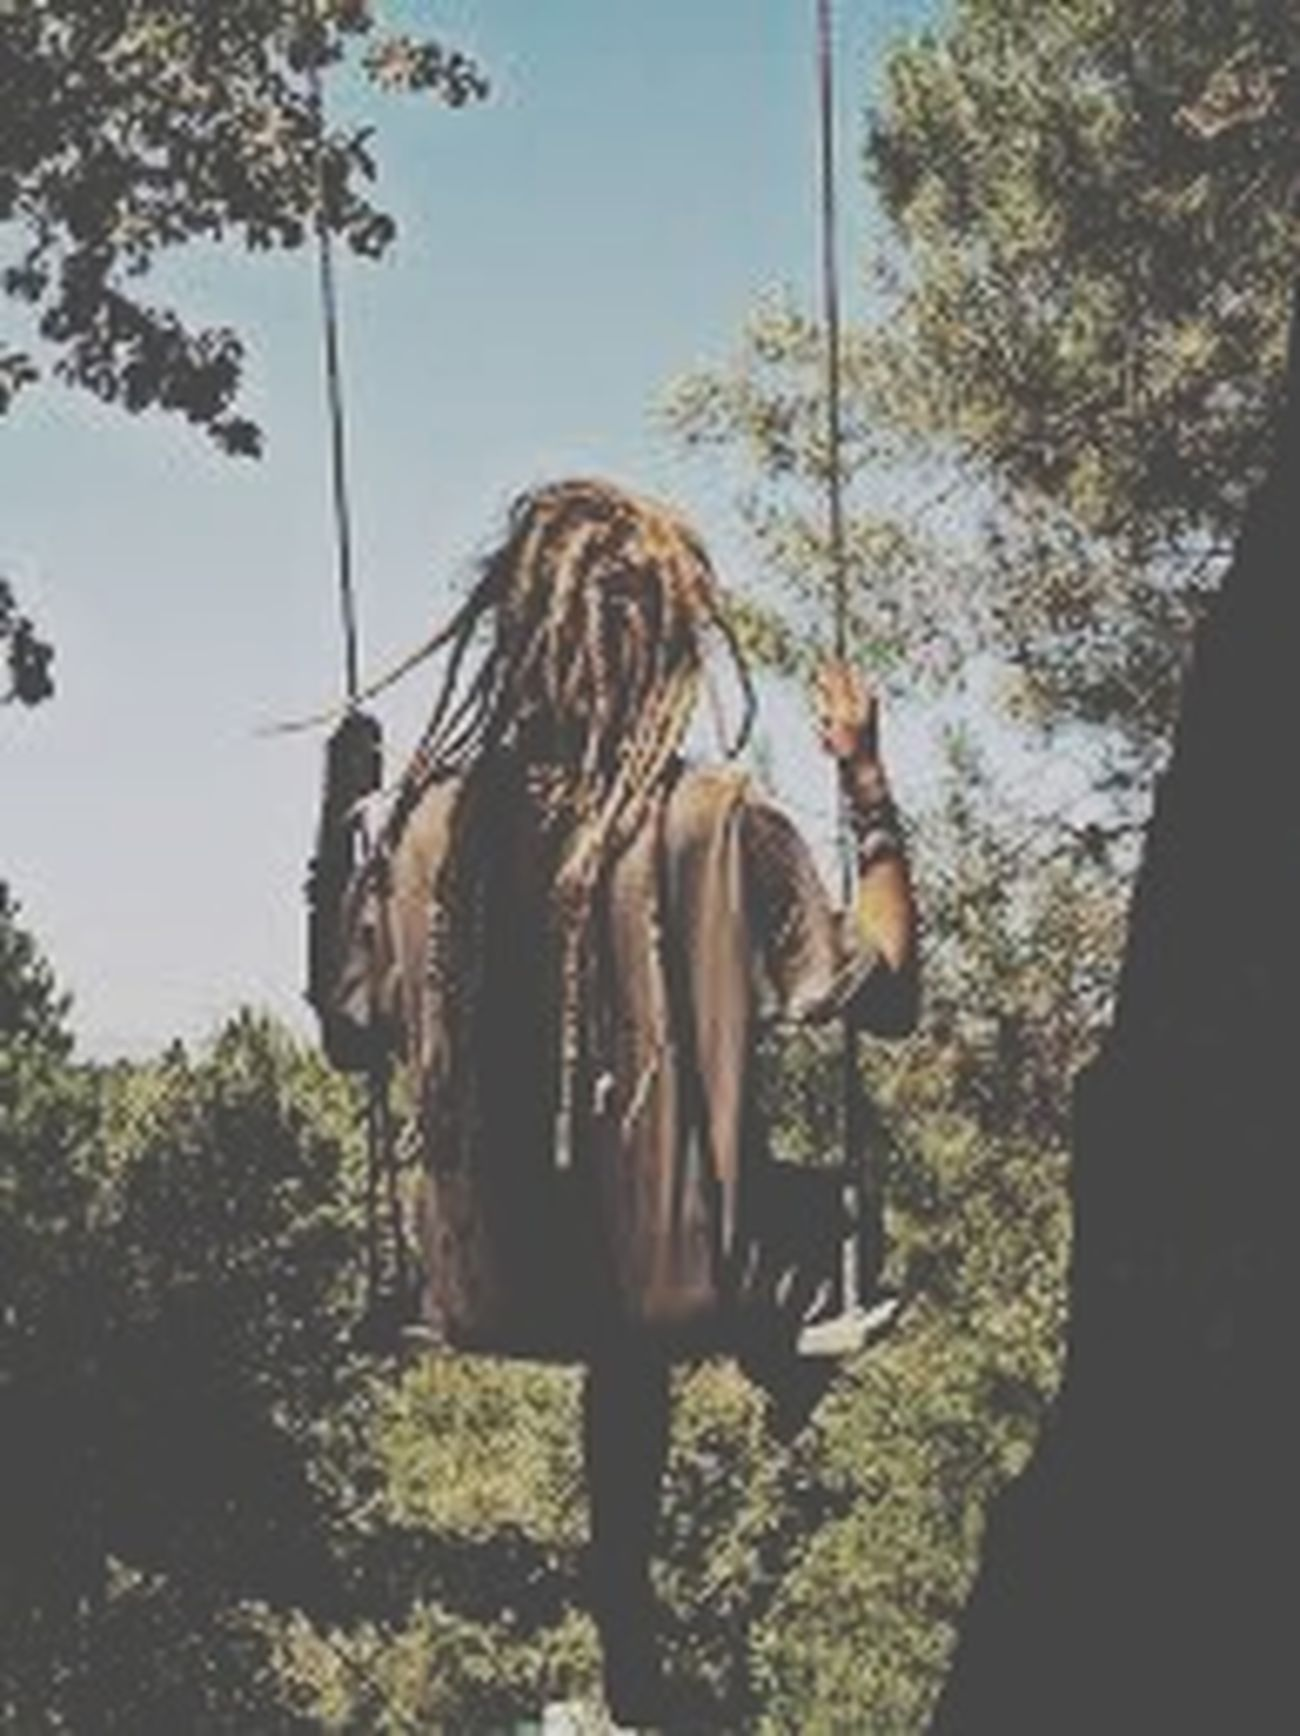 Vibe Relaxing Hippie Hipster Tumblr BR Likesfprlikes Lilmc Photography 2015 Likes Llike4likes